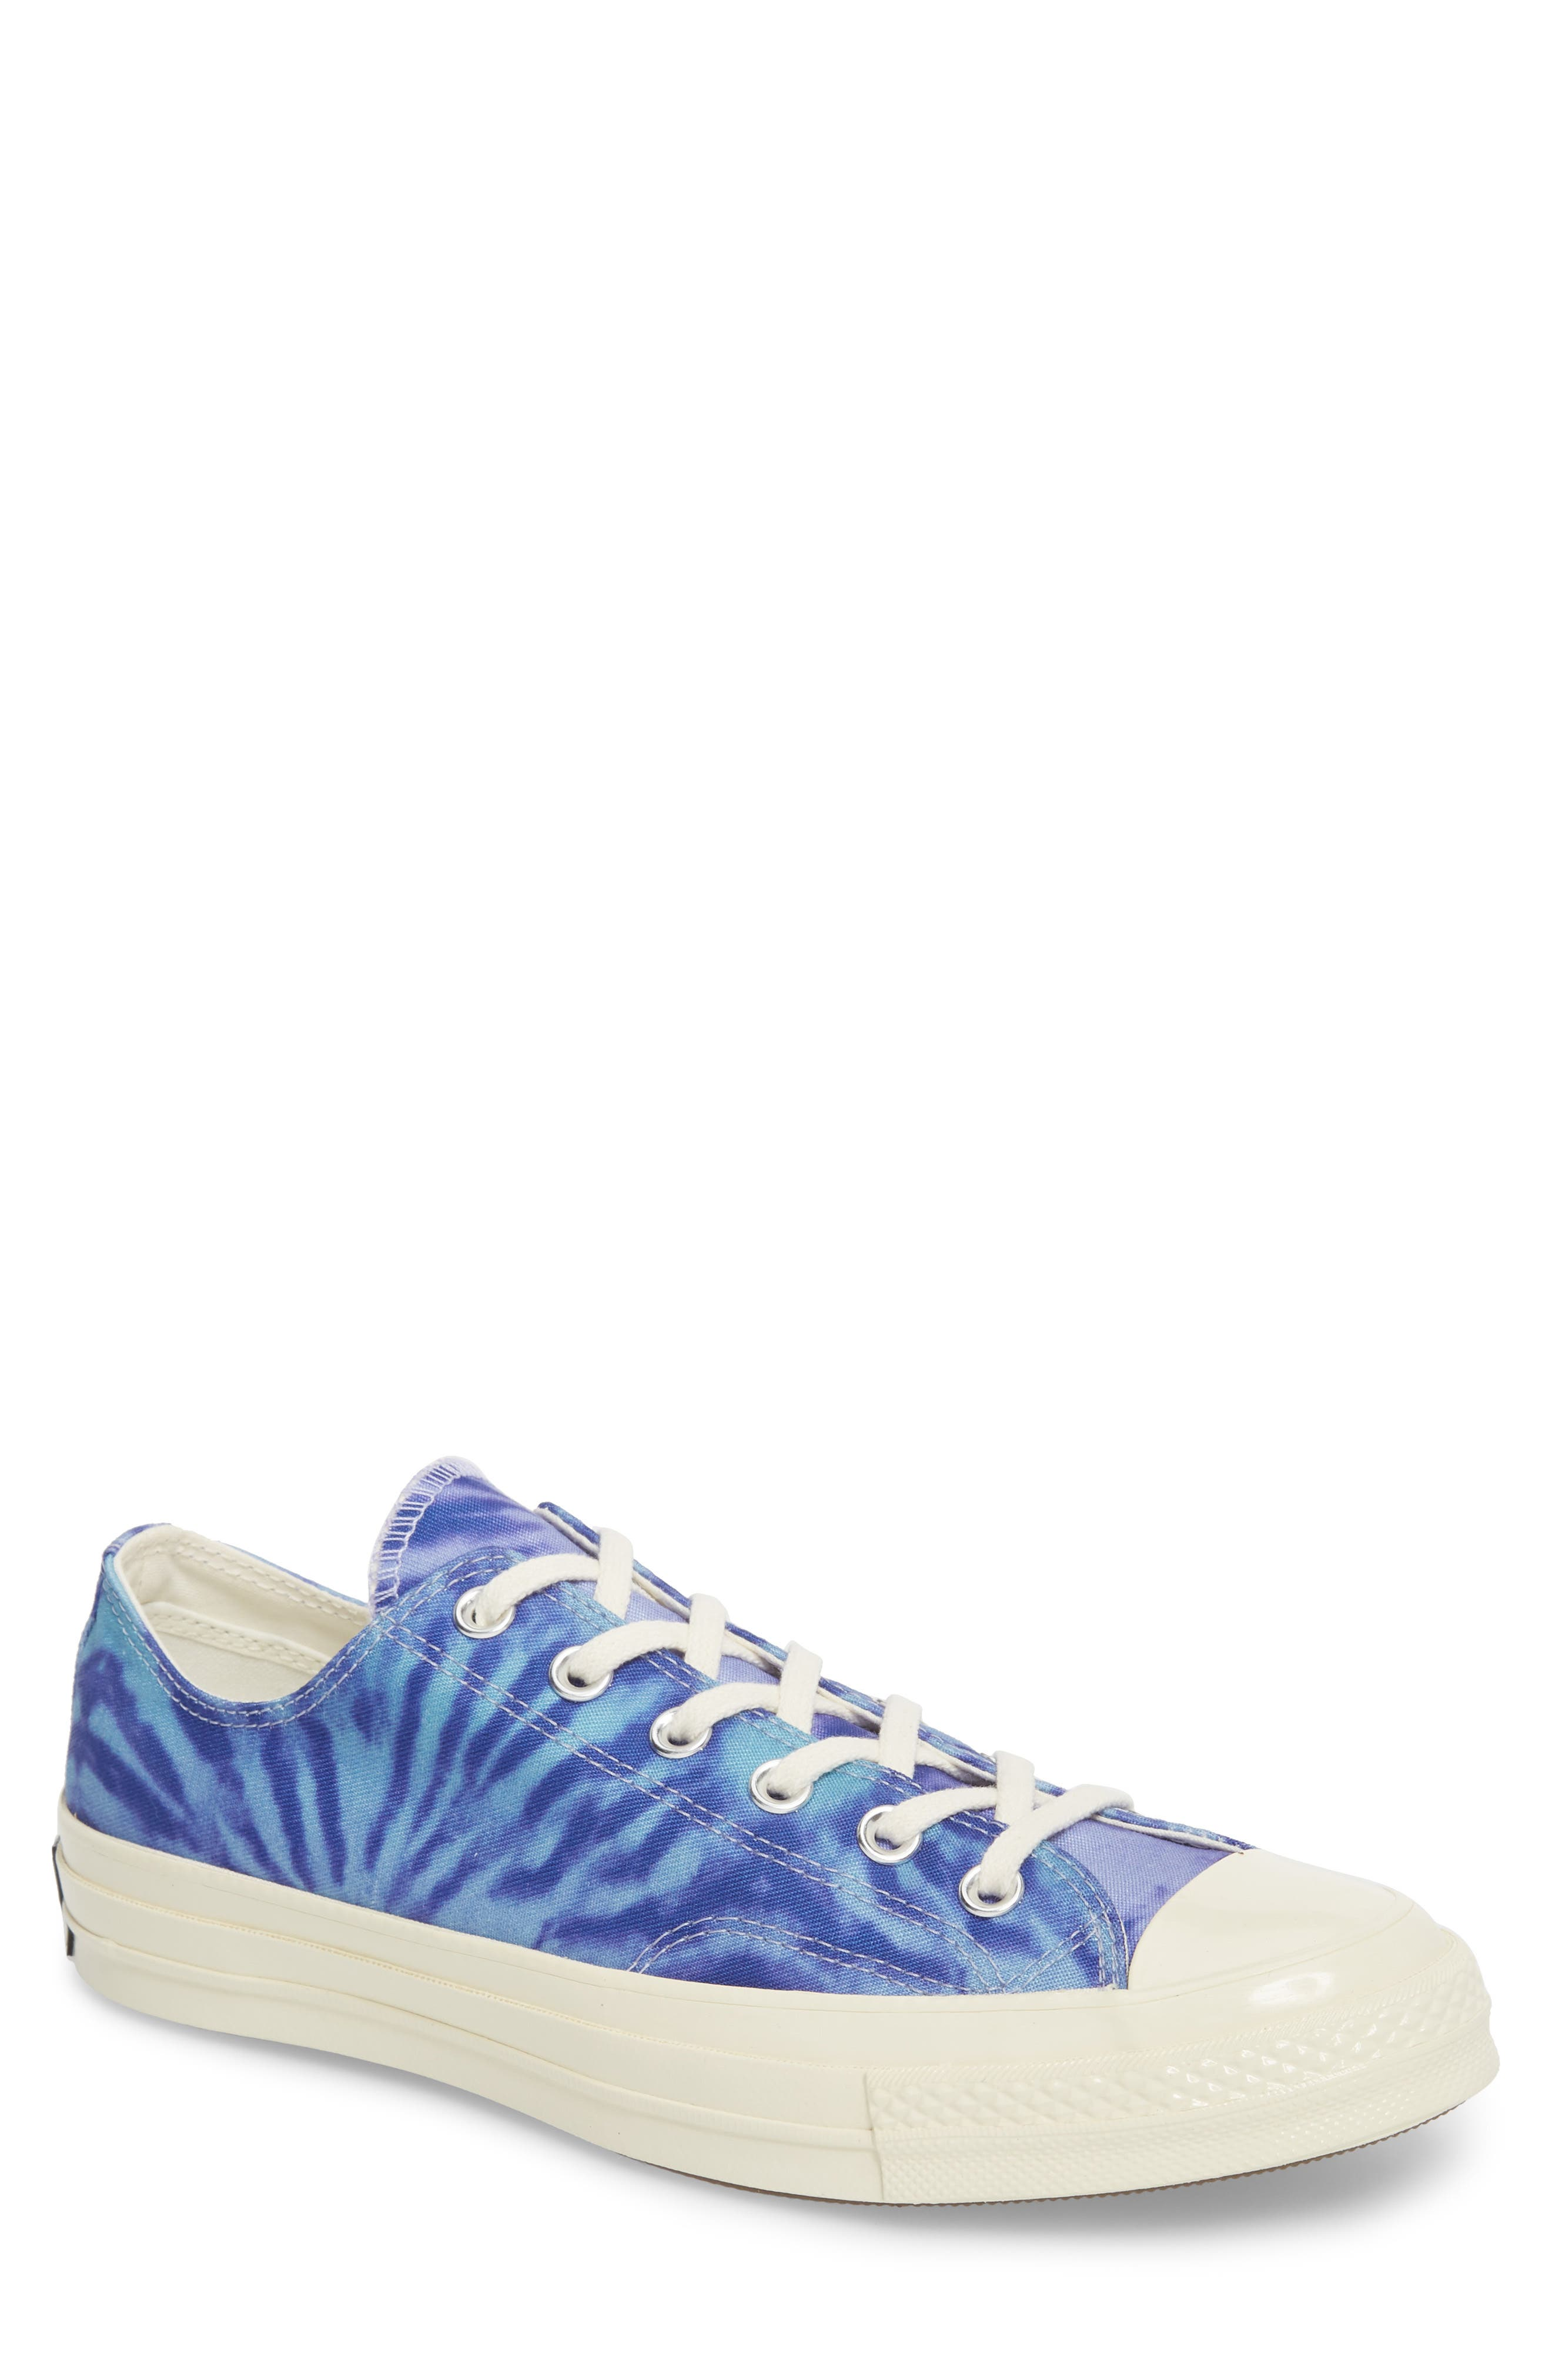 Chuck Taylor<sup>®</sup> All Star<sup>®</sup> 70 Tie Dye Low Top Sneaker,                         Main,                         color, 400